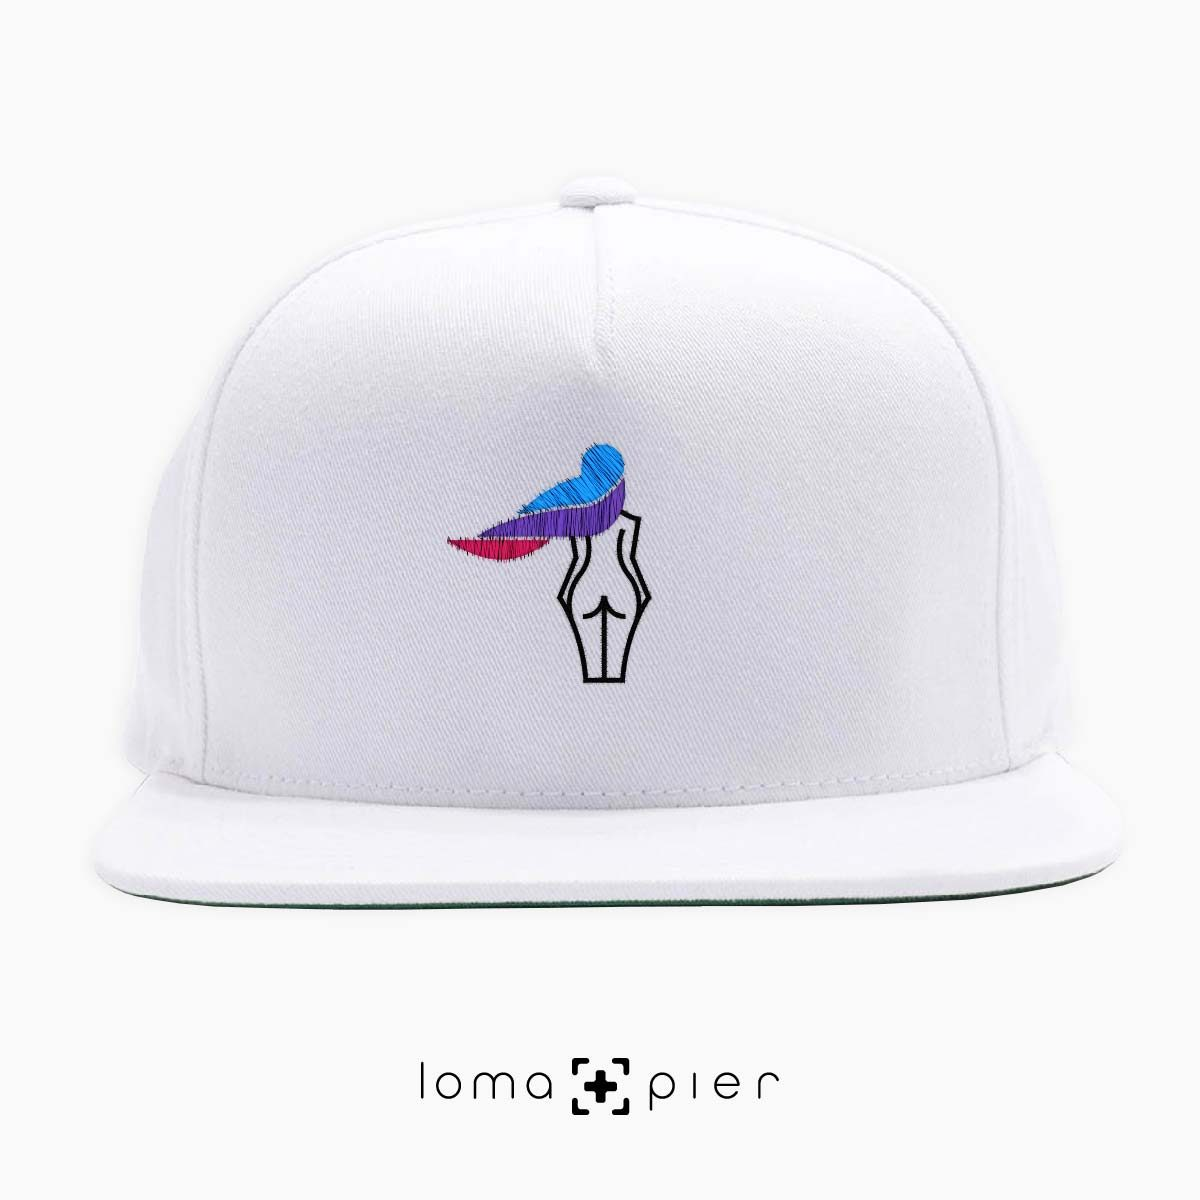 WAVY BEACH icon embroidered on a white classic snapback hat with multicolor thread by loma+pier hat store